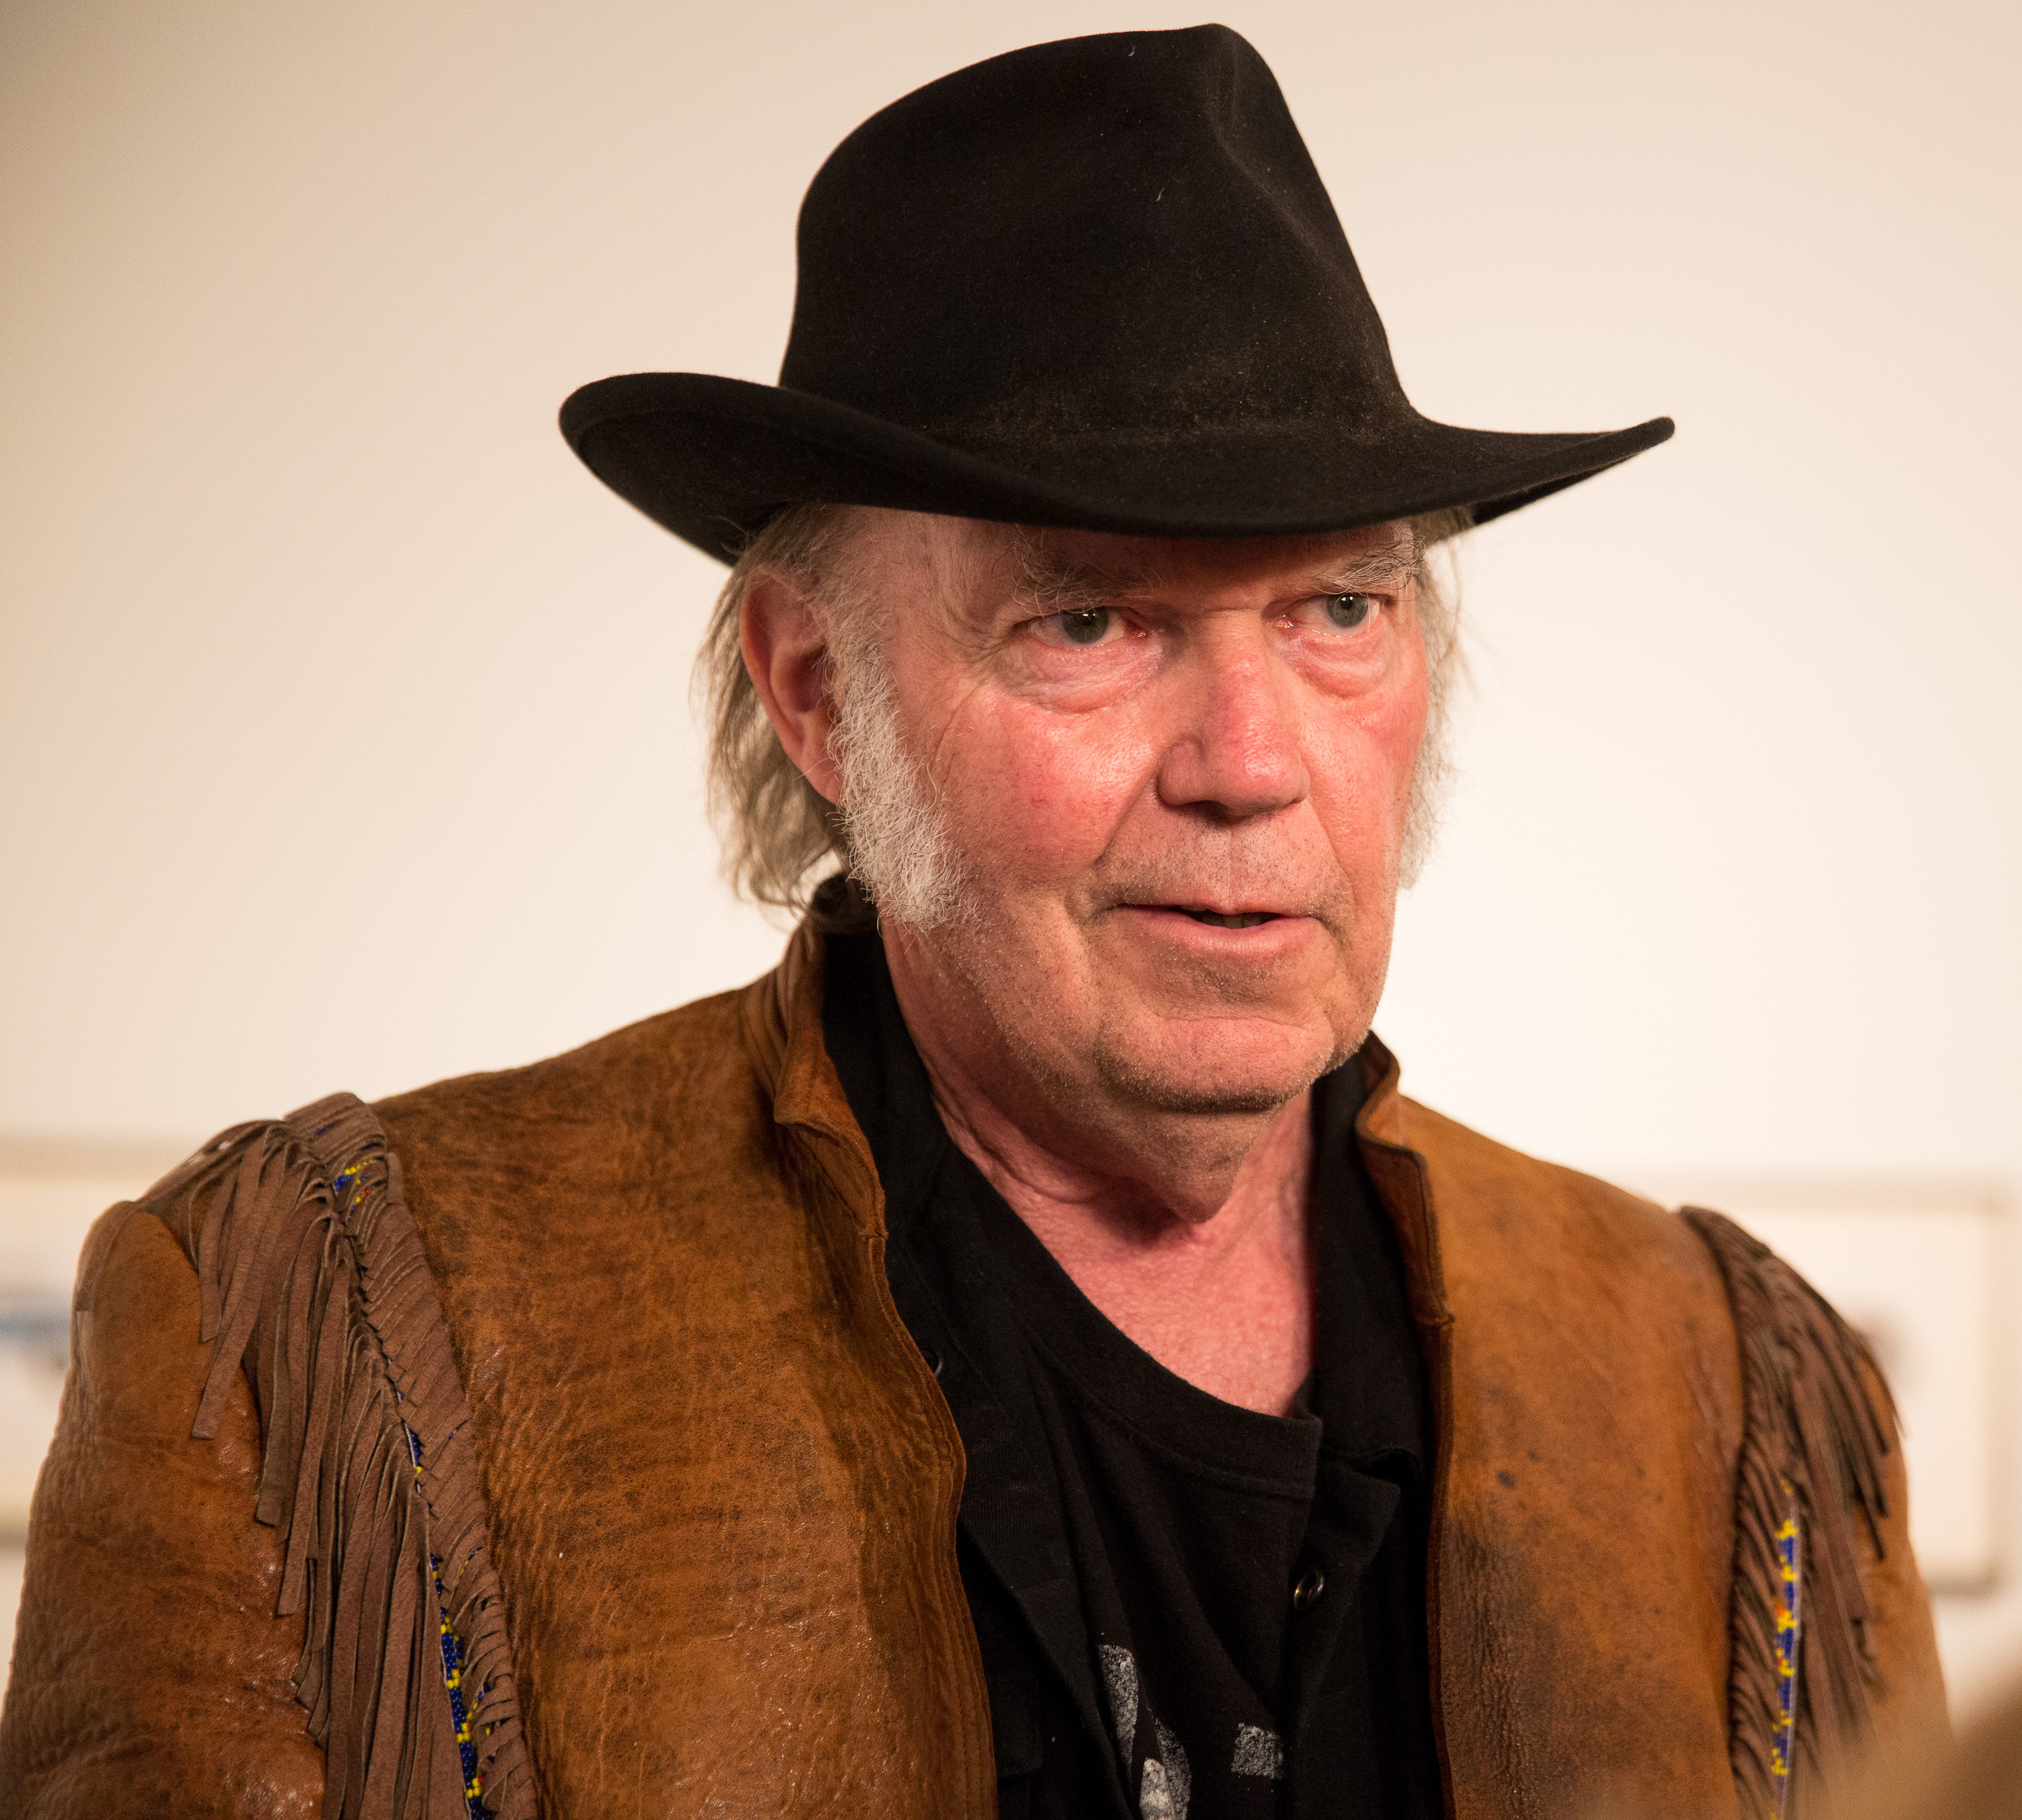 Neil Young attends his opening night reception for  Special Deluxe  at Robert Berman Gallery on Nov. 3, 2014 in Santa Monica, Calif.